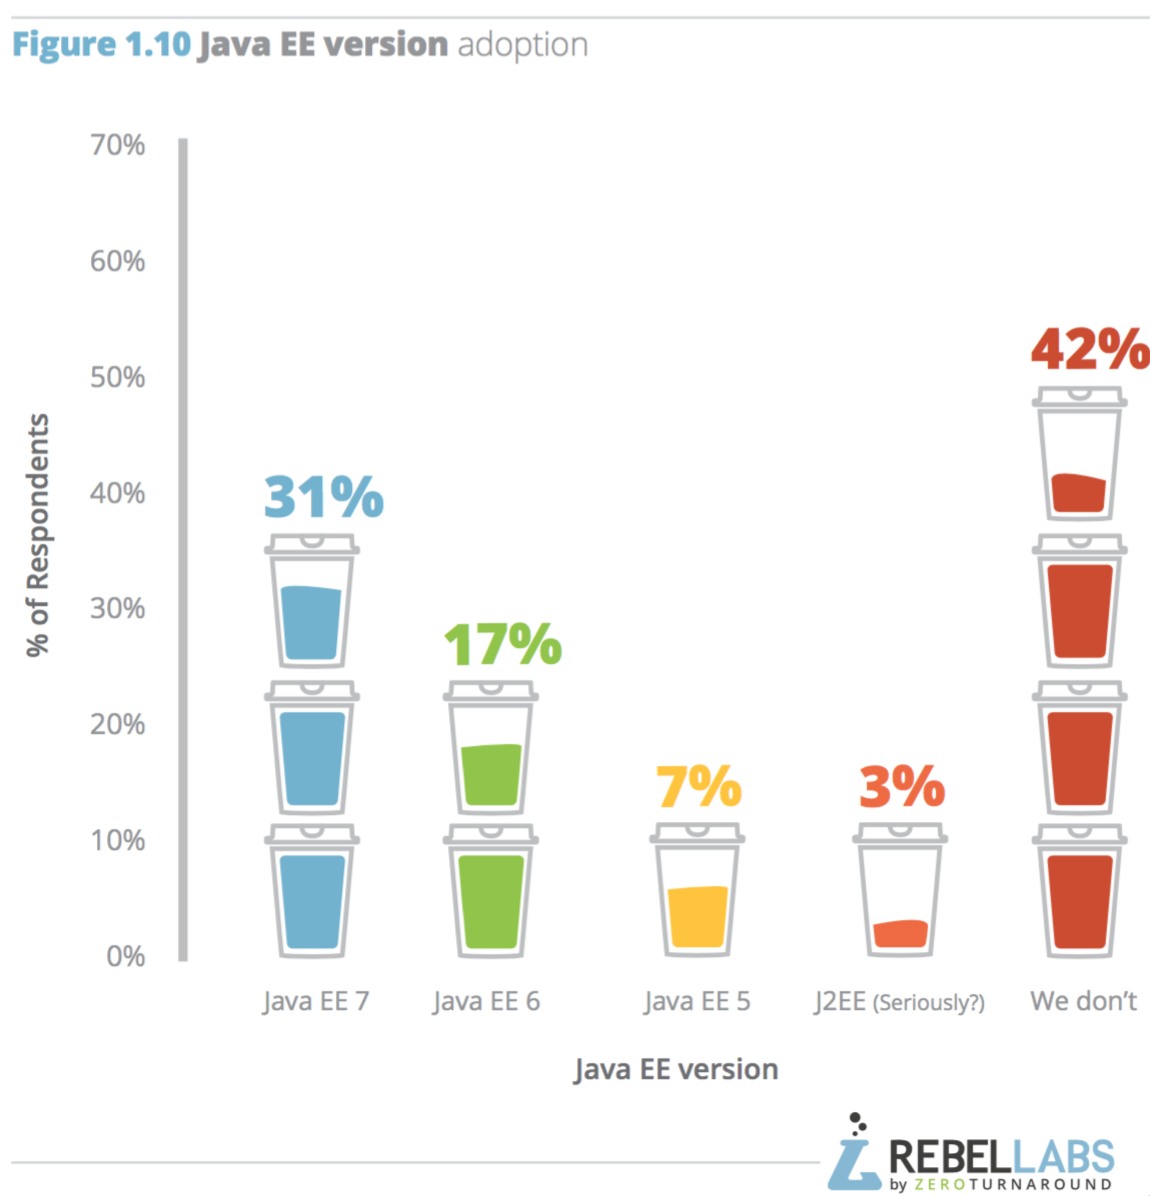 bar graph showing Java EE version adoption among respondents